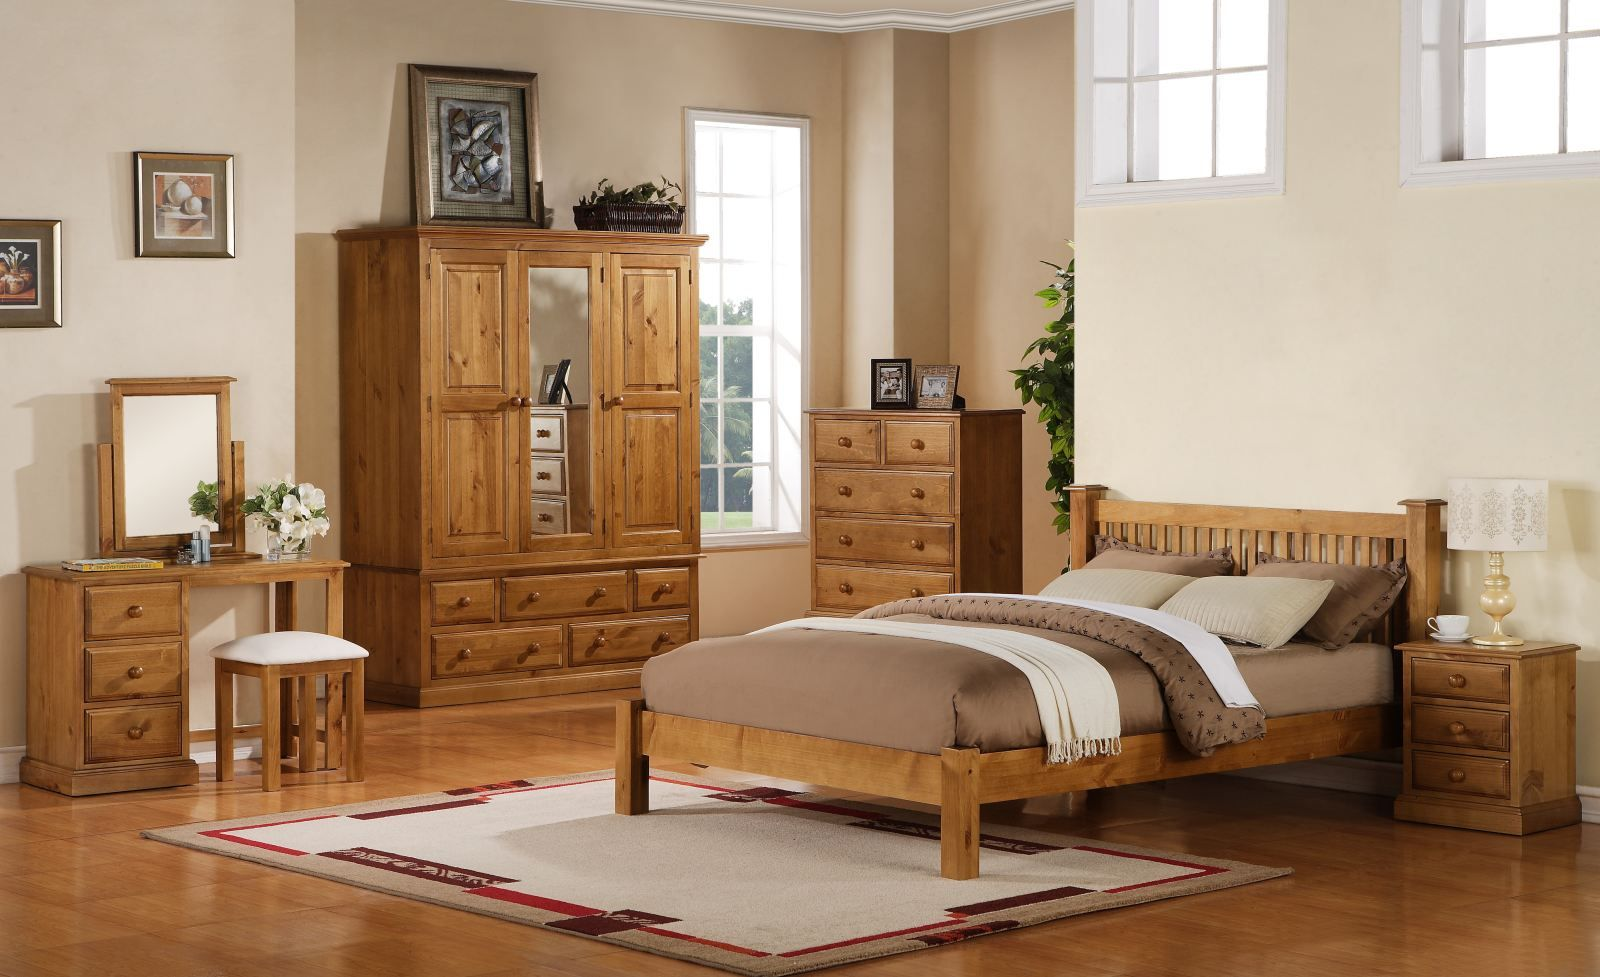 Elegant Bedroom Interior Design With Wooden Furniture Set Also ...